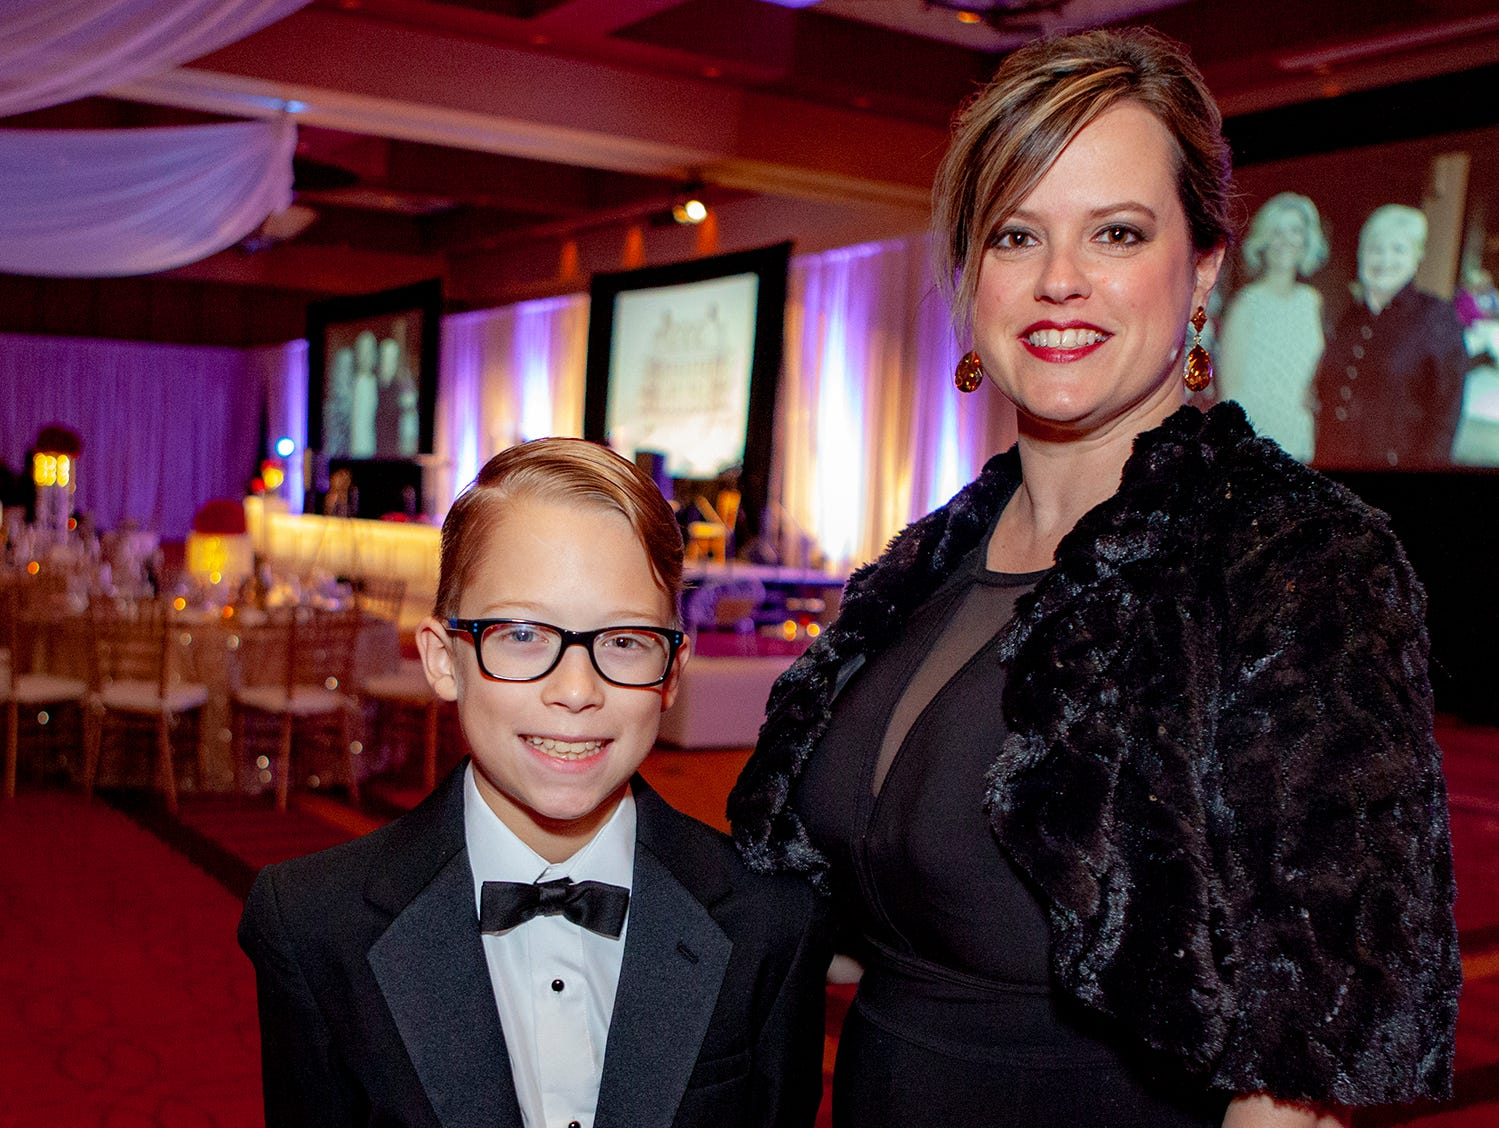 William and Crystal Waldron at the 2019 Saint Thomas Rutherford Foundation Gala on Saturday, Jan. 19, 2019 at Embassy Suites Murfreesboro.